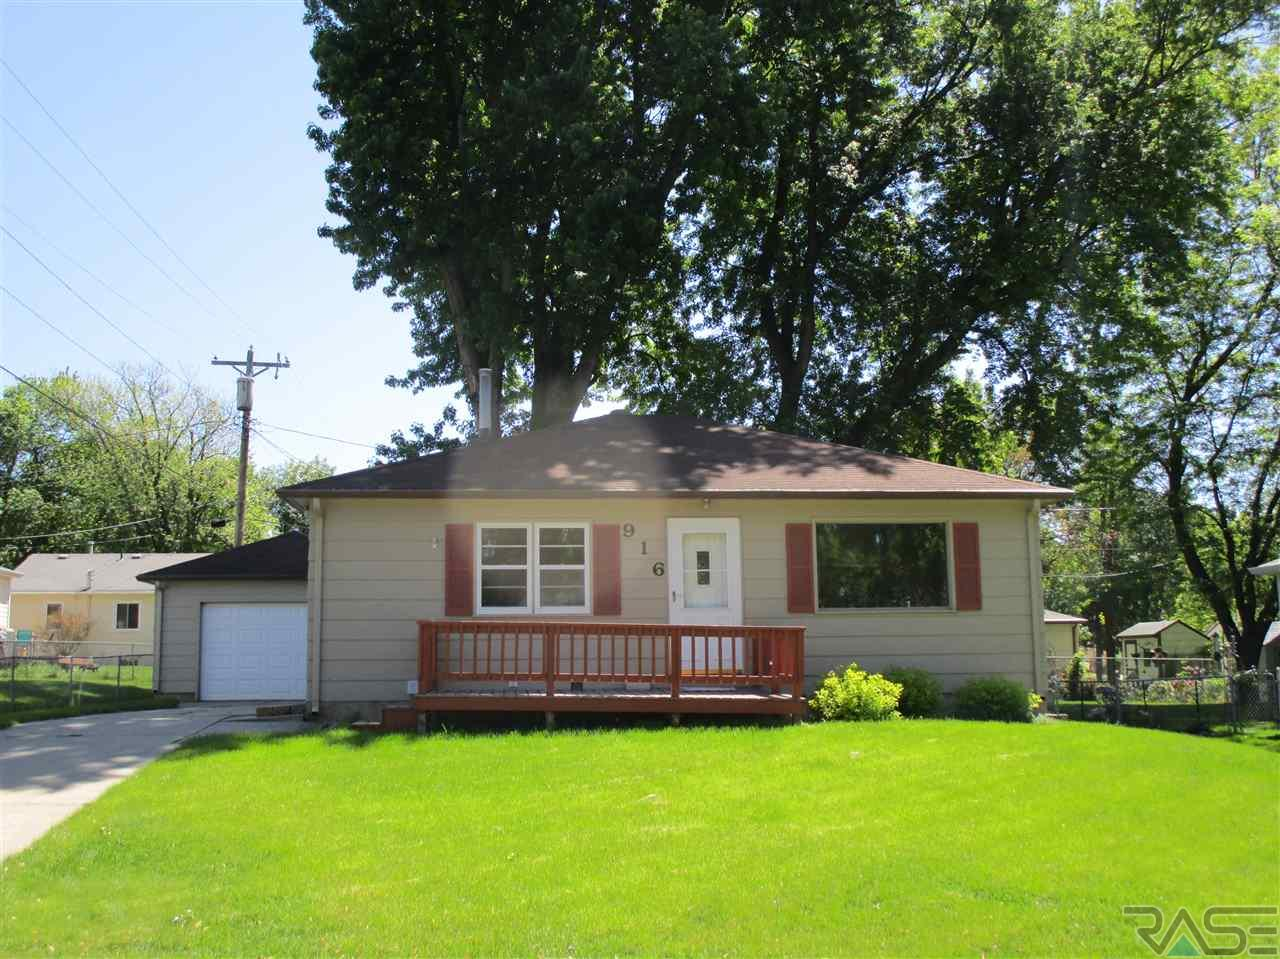 916 S Holt Ave, Sioux Falls, SD 57103